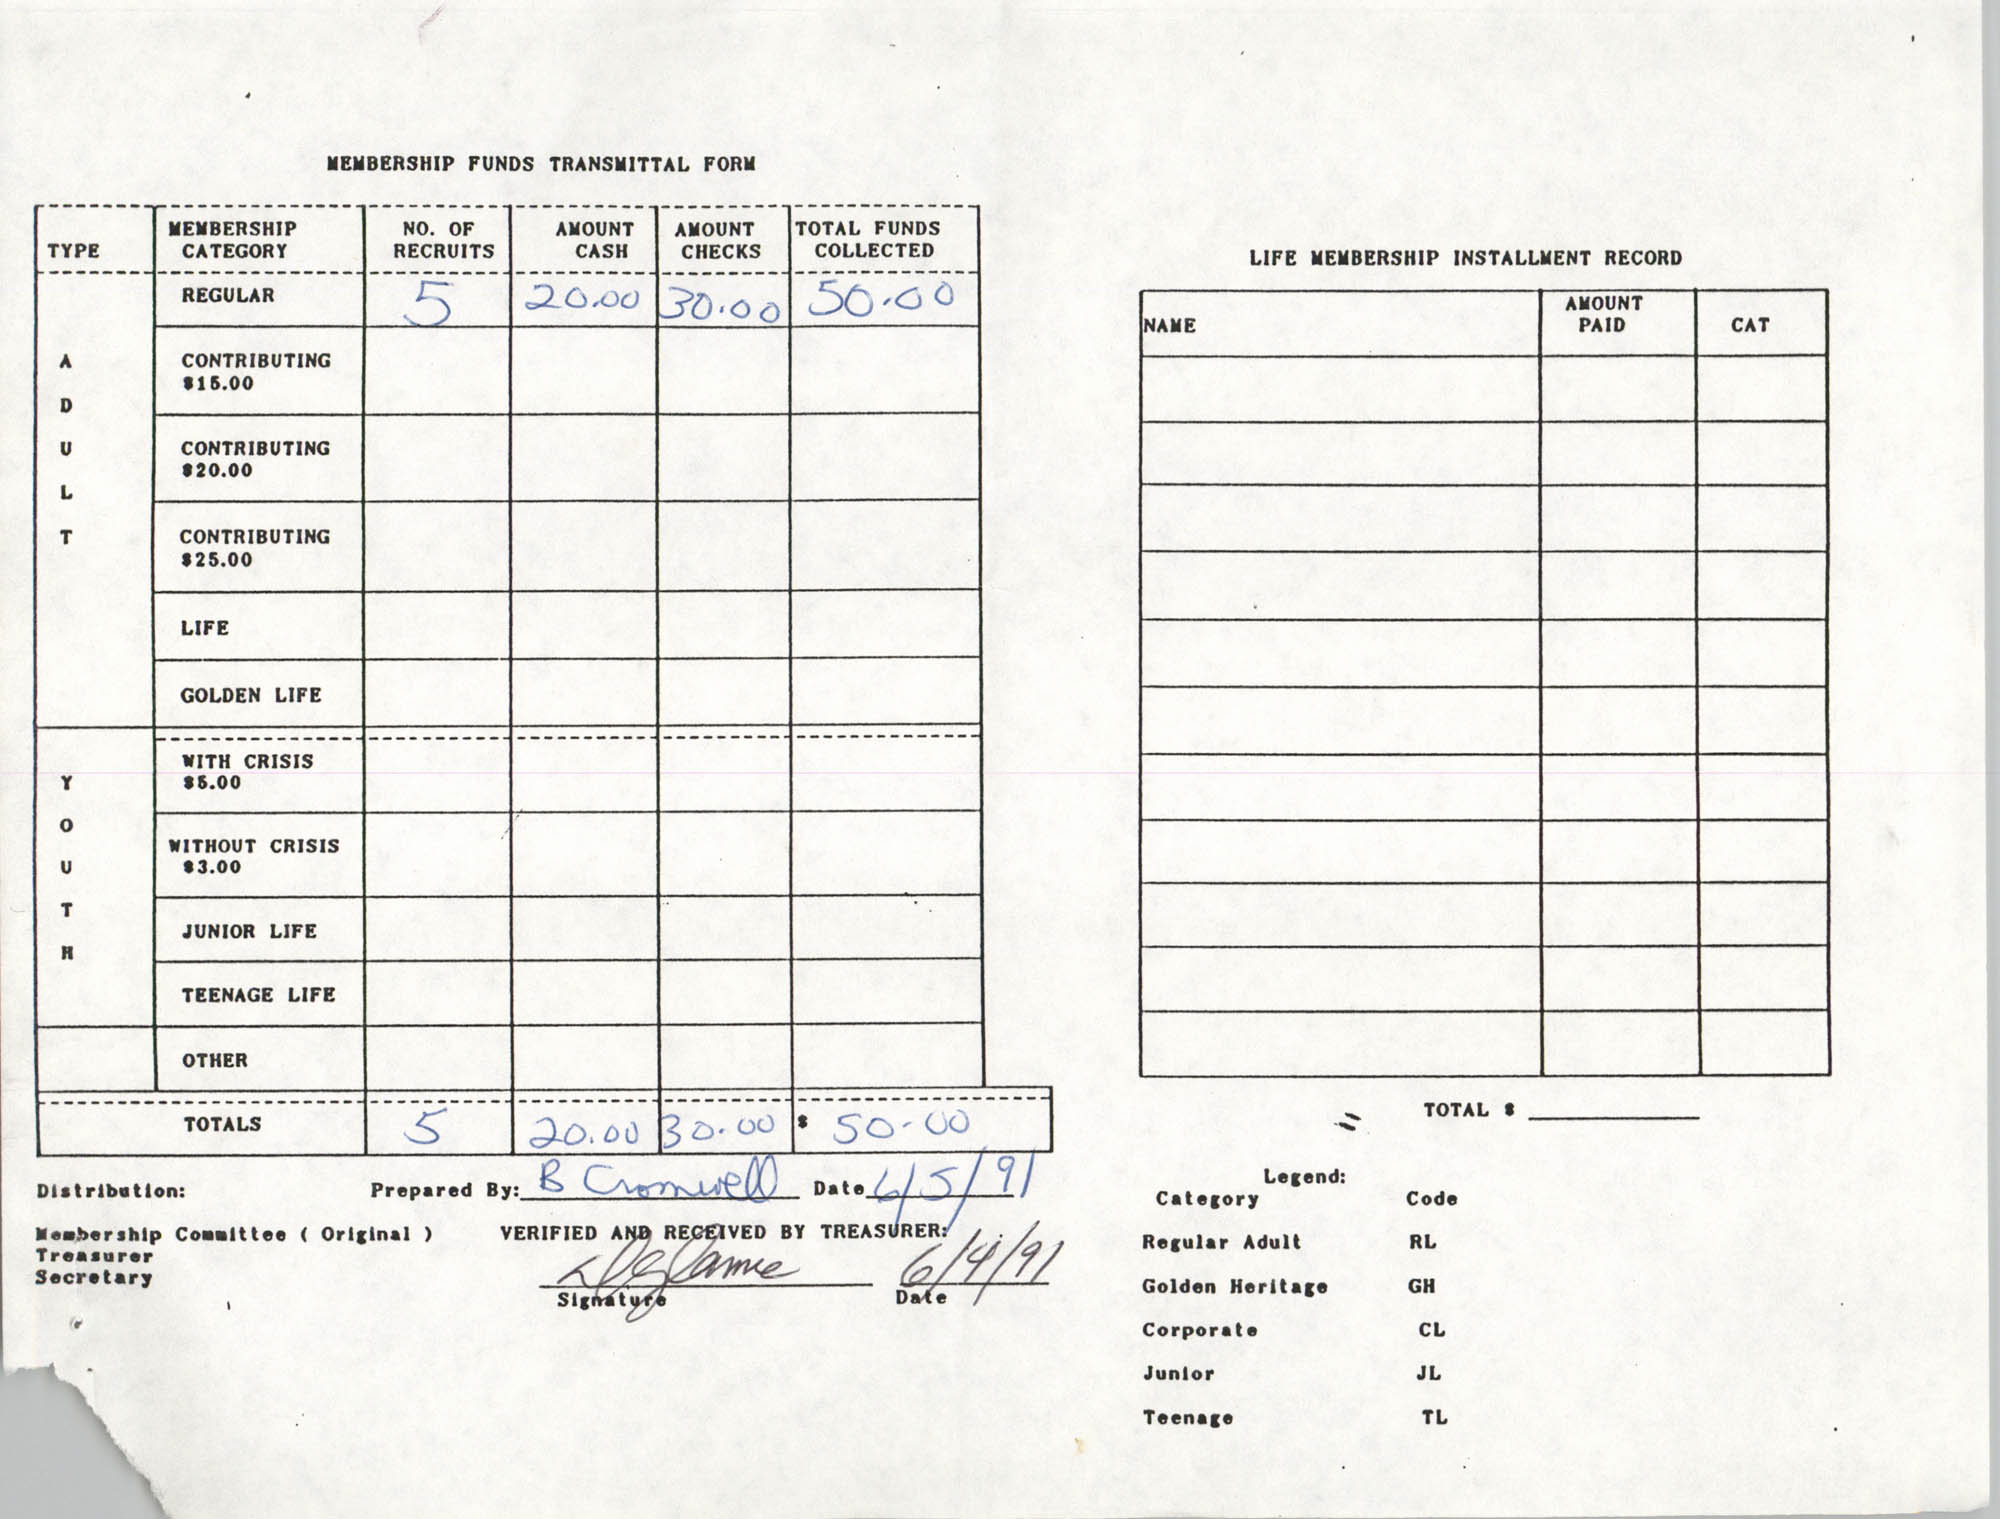 Charleston Branch of the NAACP Funds Transmittal Forms, June 1991, Page 1